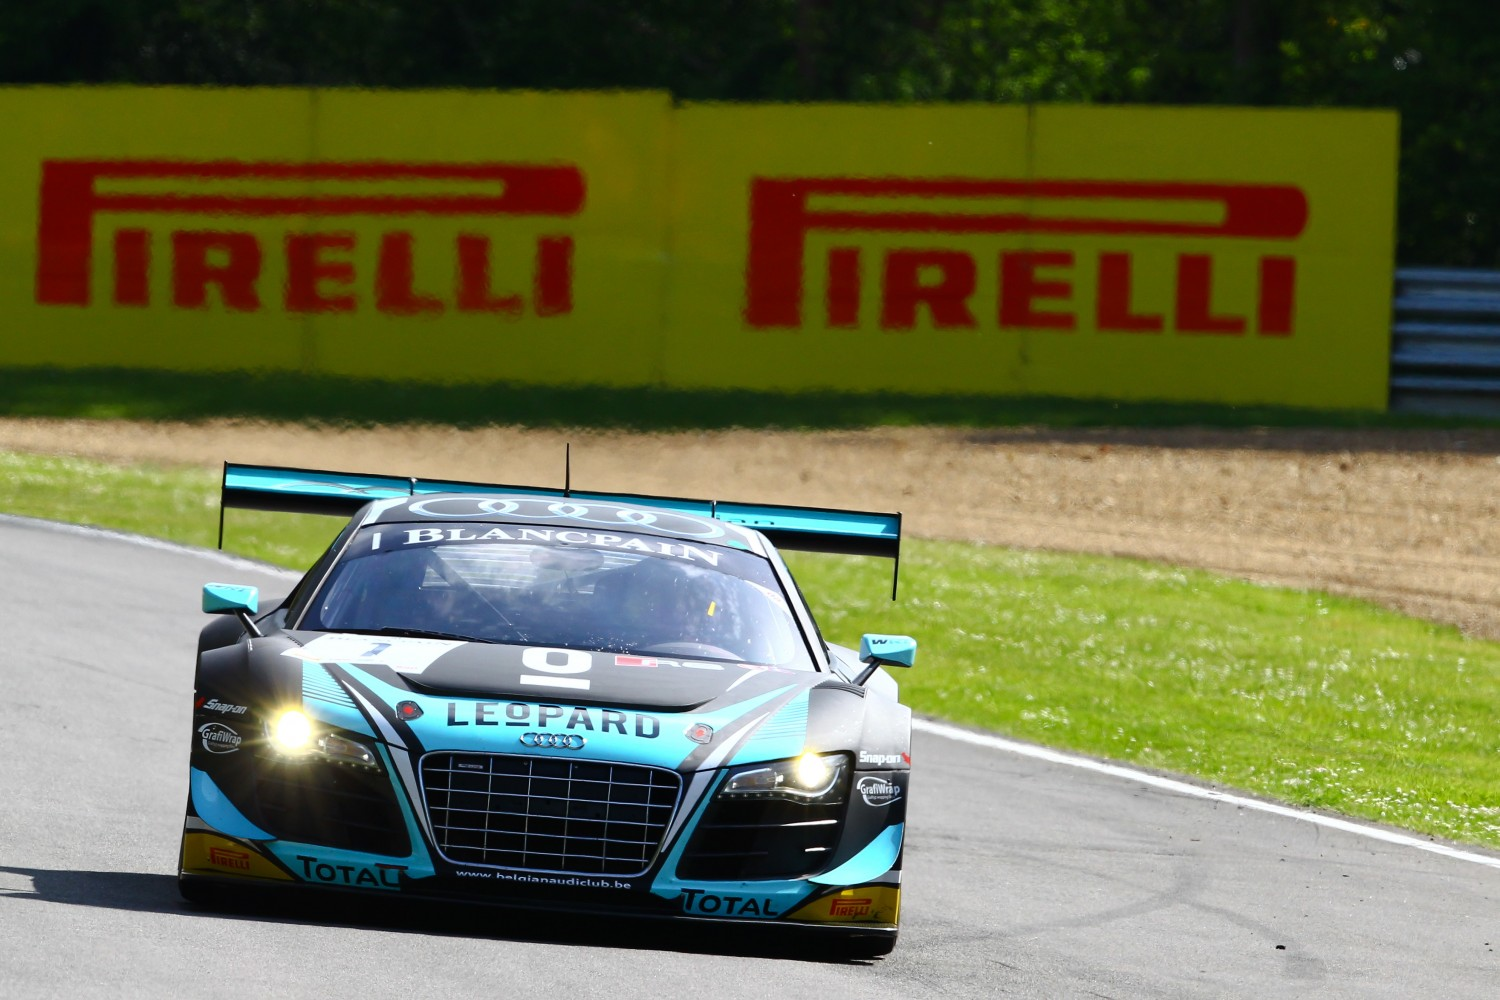 Emotional win for Laurens Vanthoor and Robin Frijns